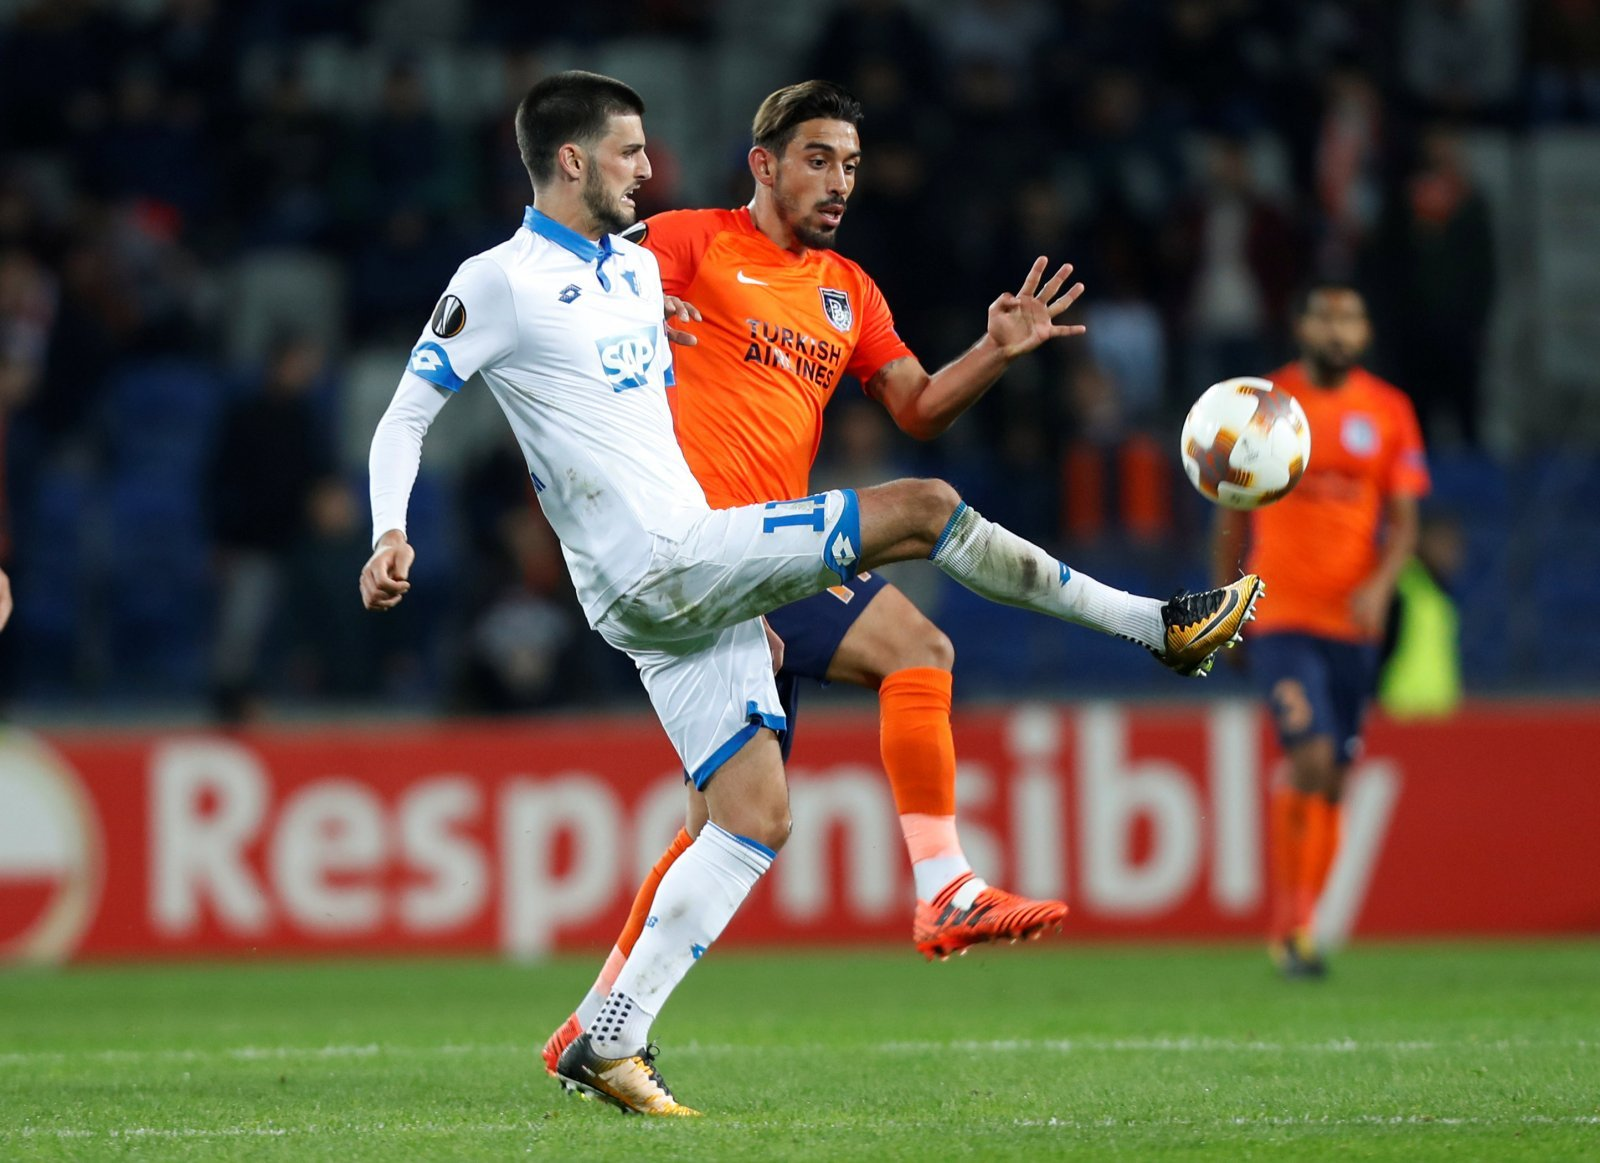 Irfan Kahveci has an awful lot of quality to bring to Leeds United